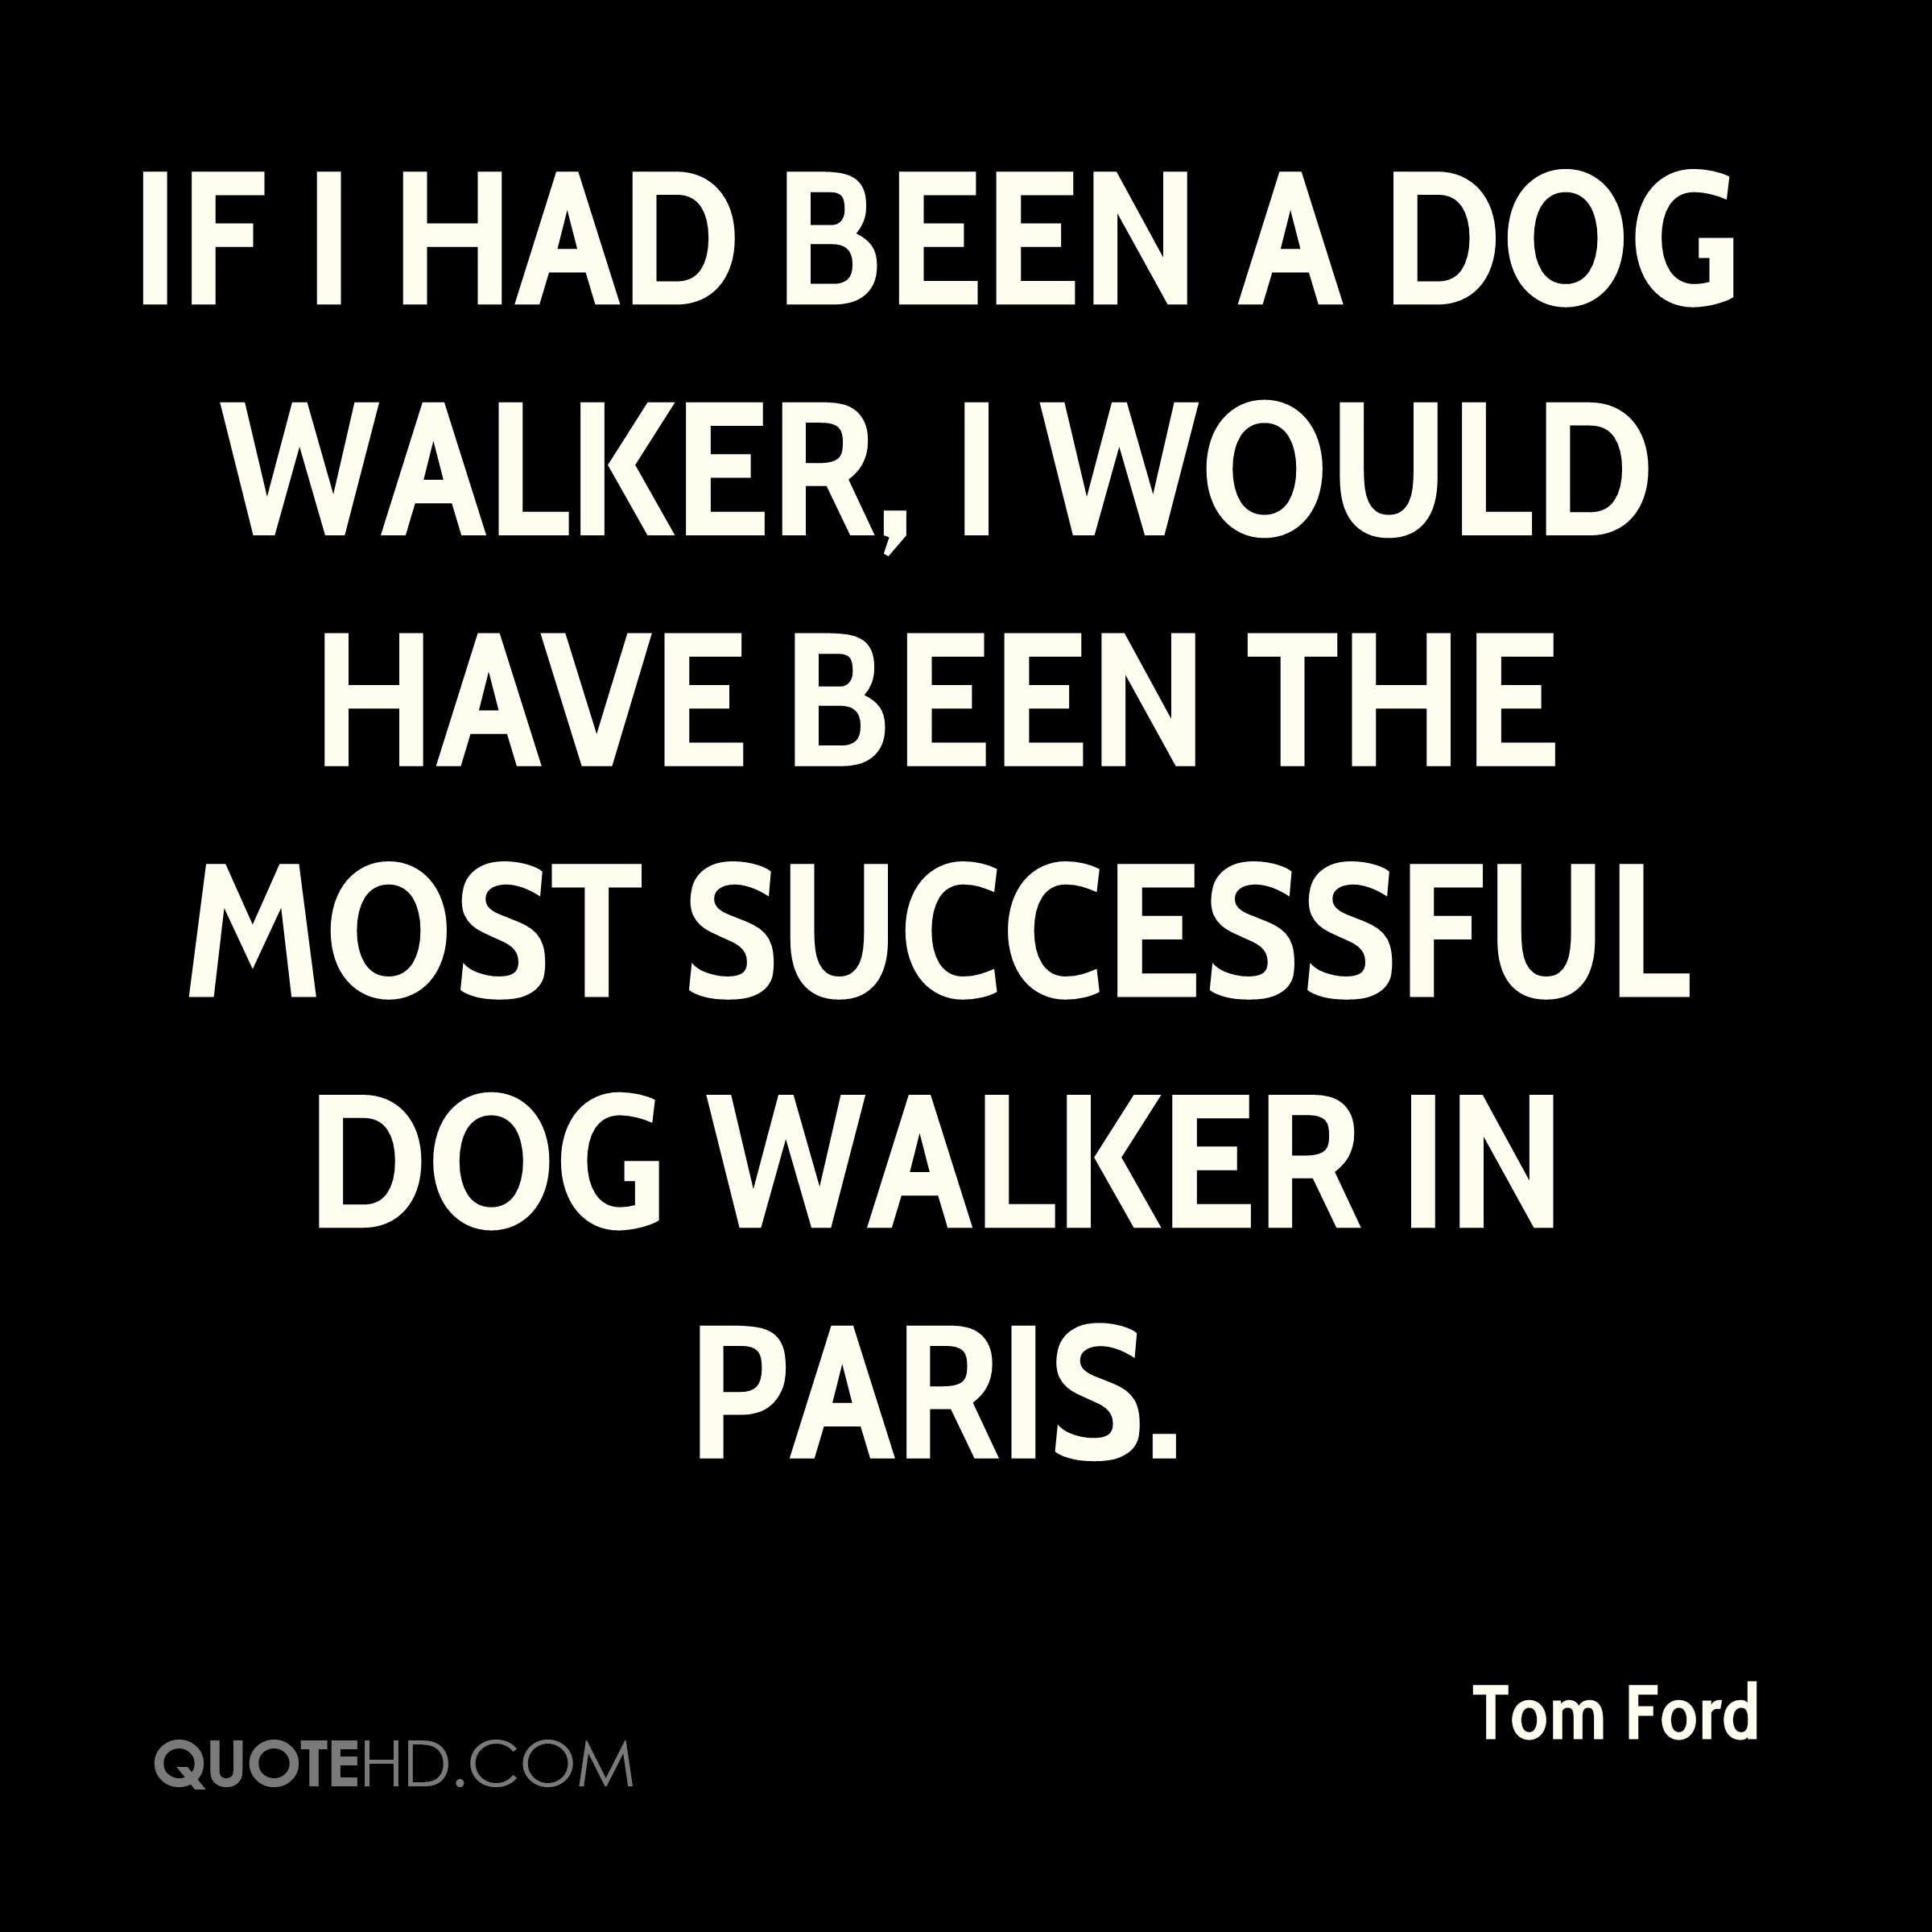 If I had been a dog walker, I would have been the most successful dog walker in Paris.